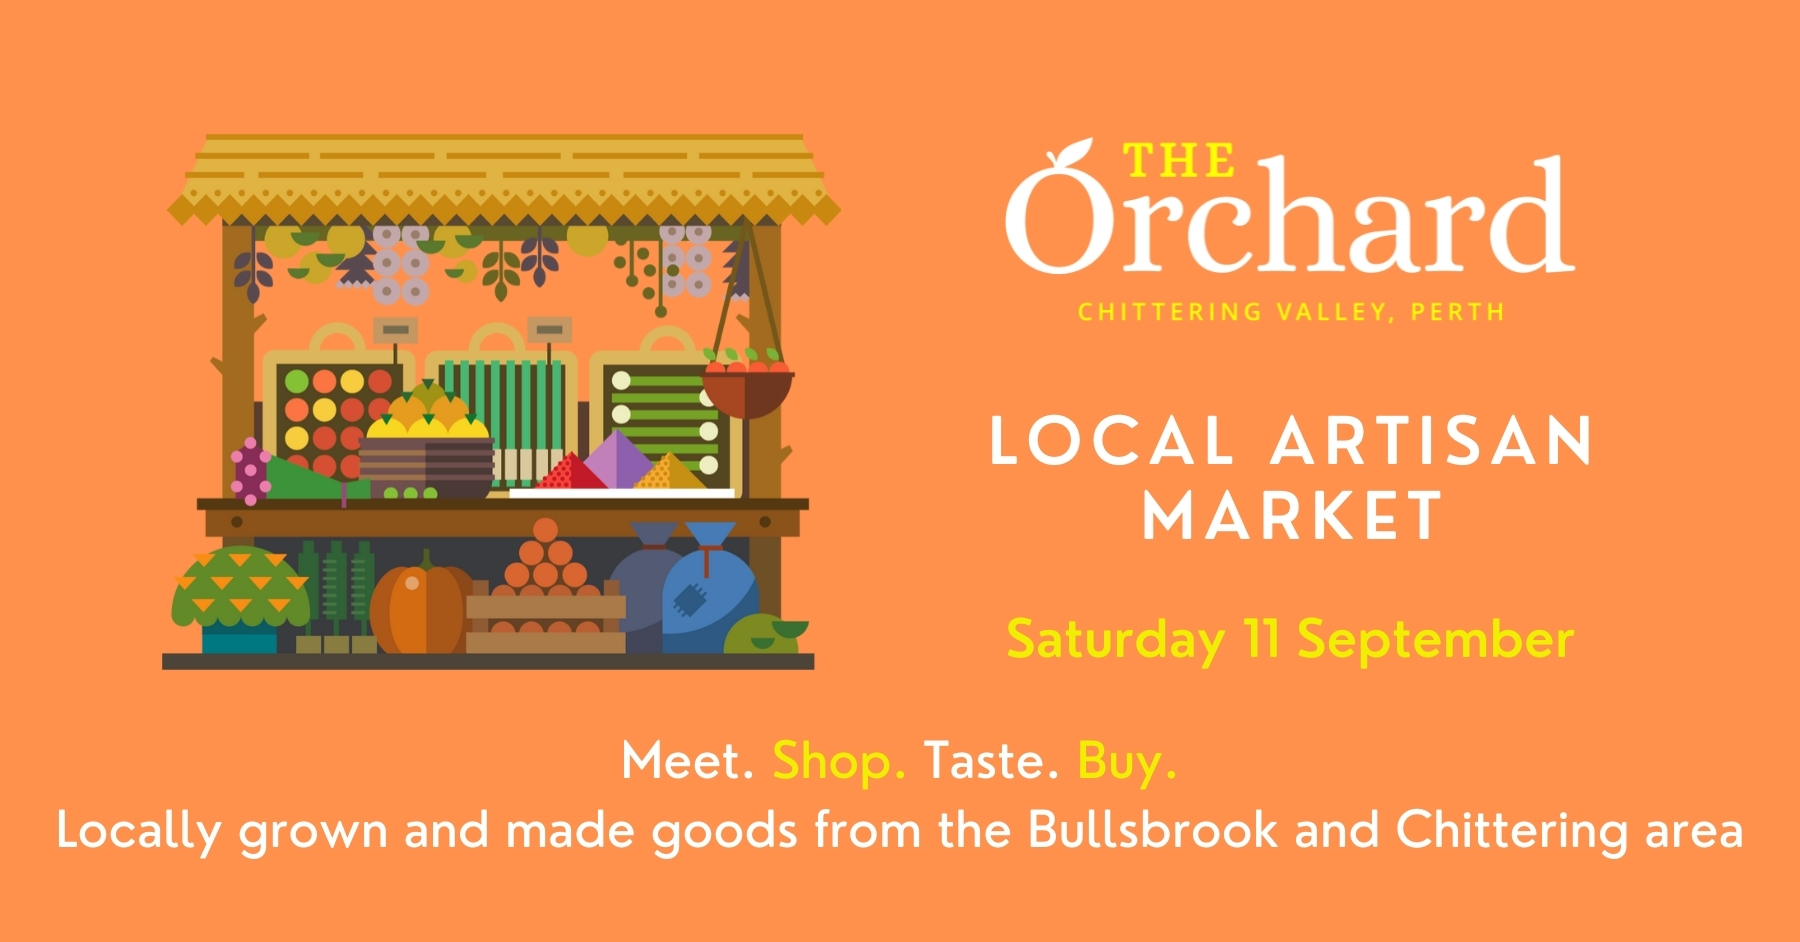 Local Artisan Market - The Orchard Perth